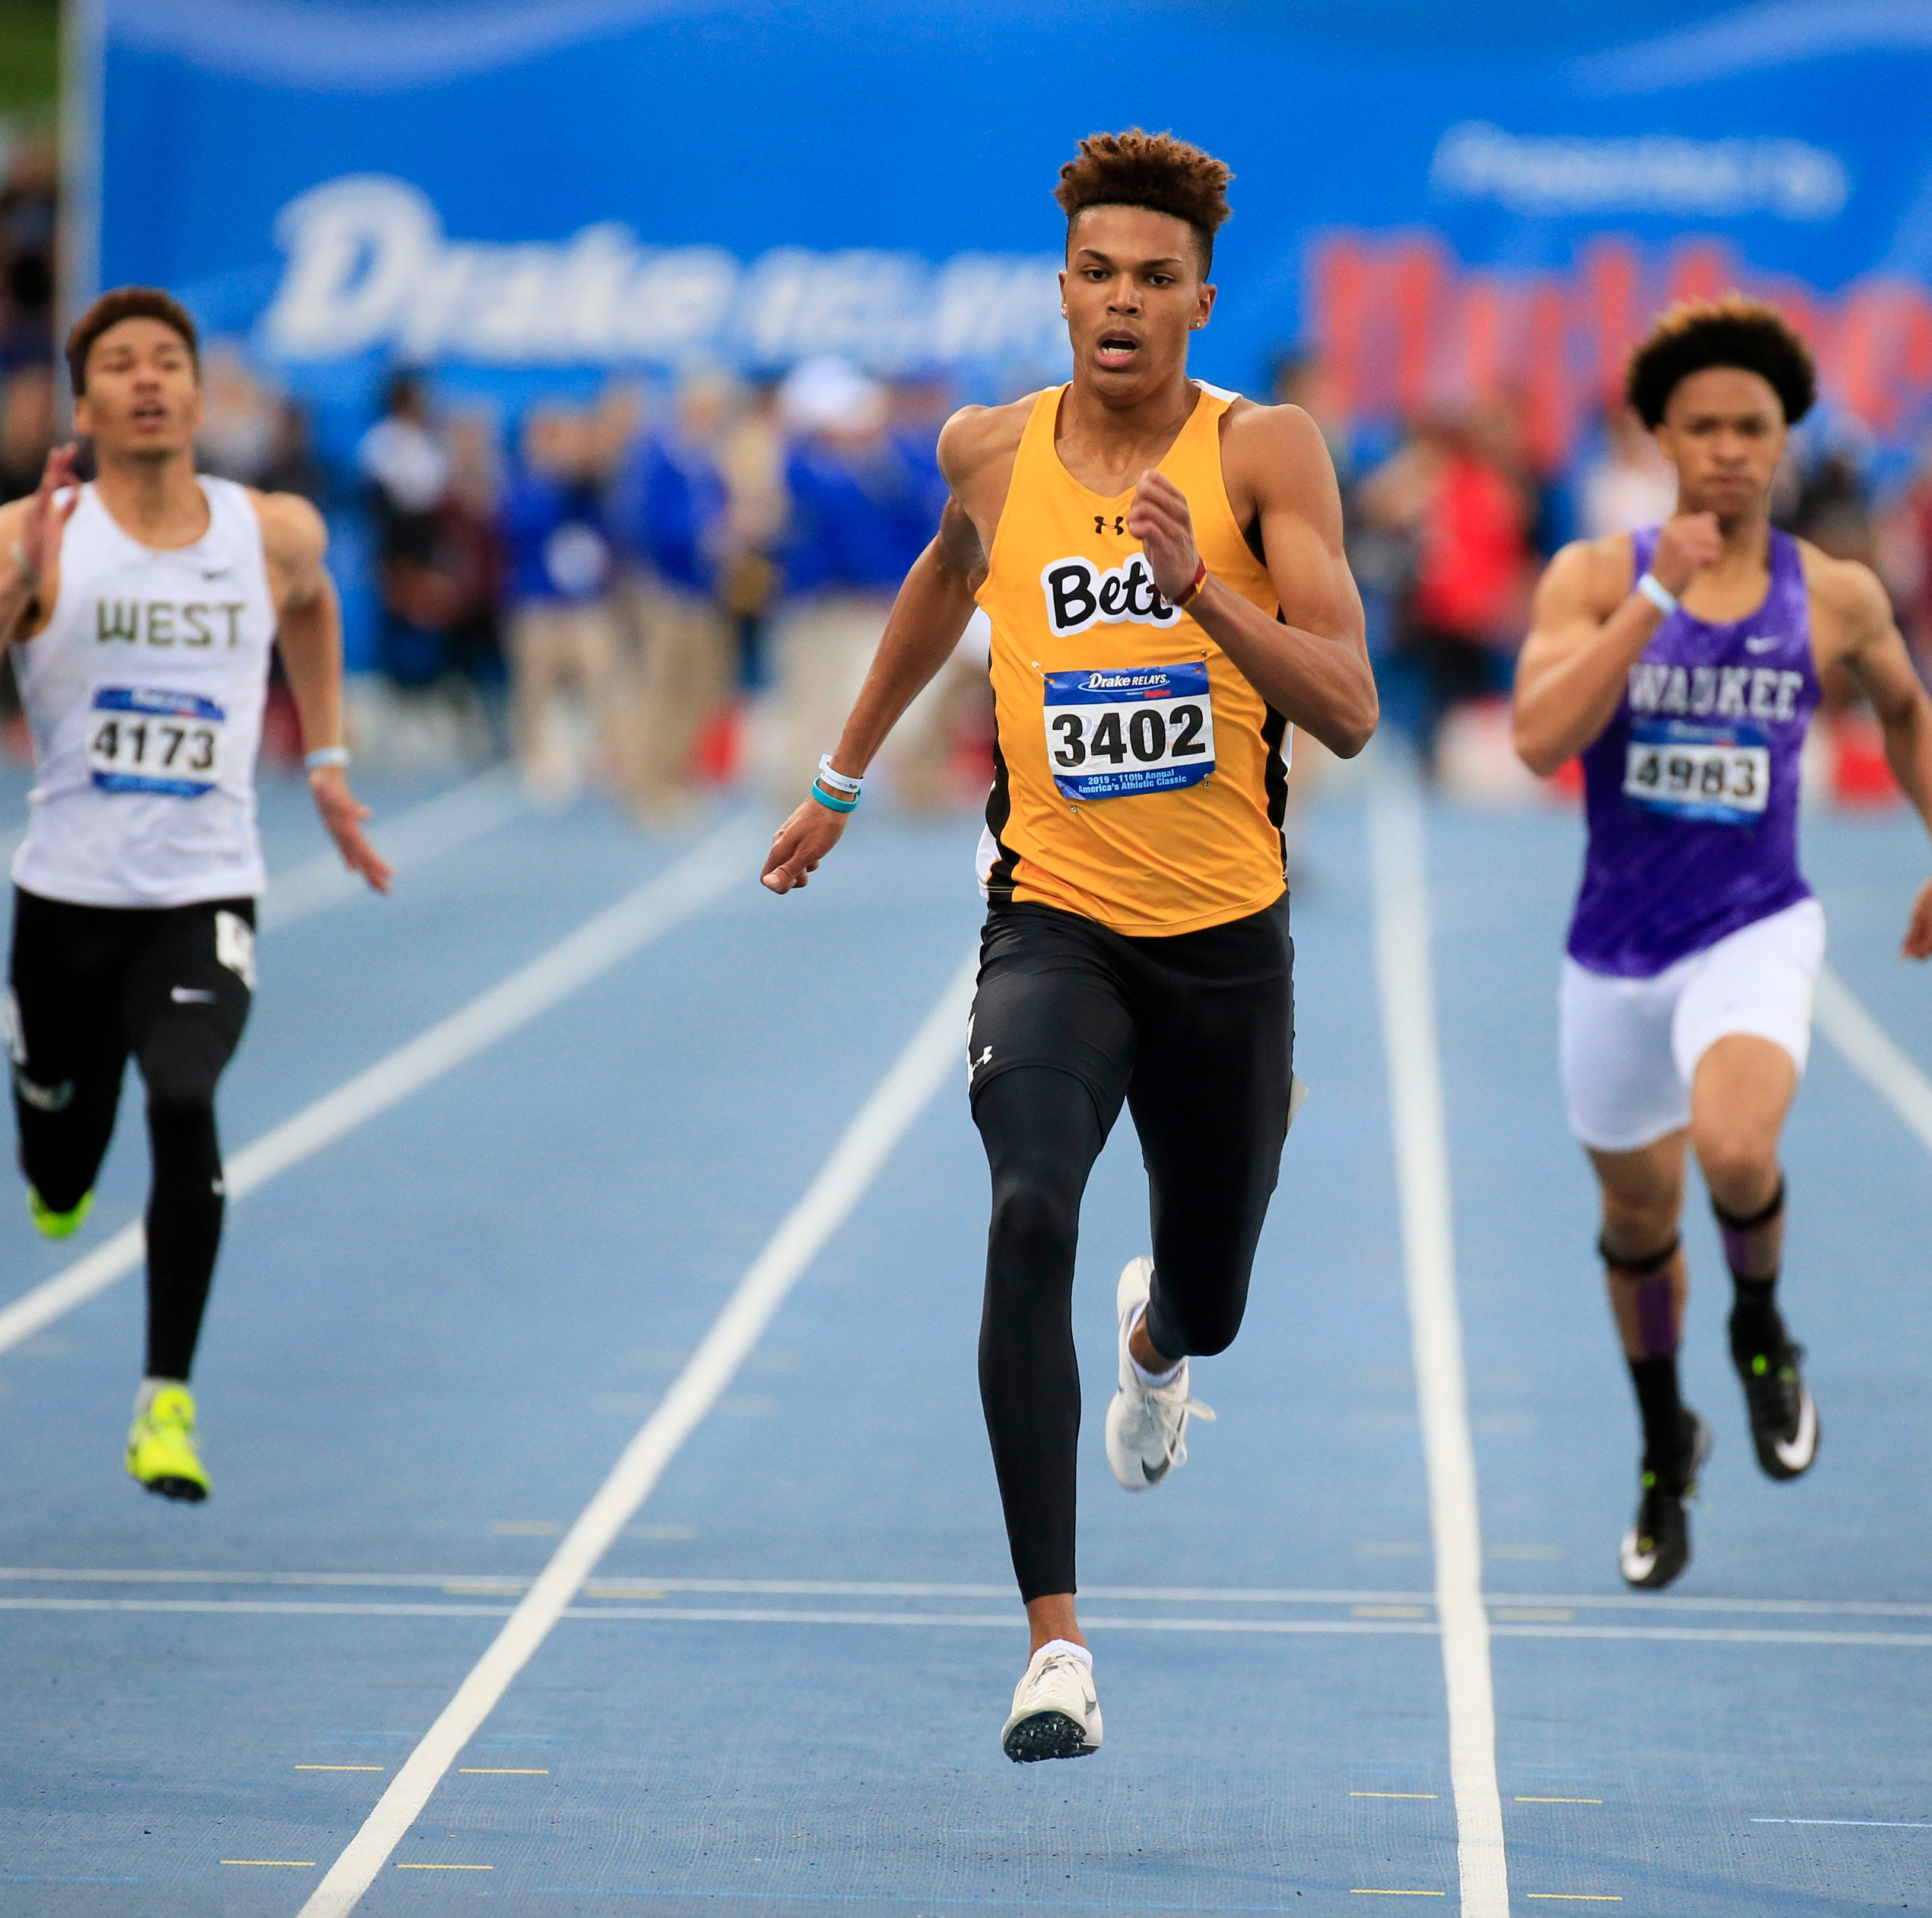 Storylines to follow, names to watch at the 2019 Iowa boys' state track meet